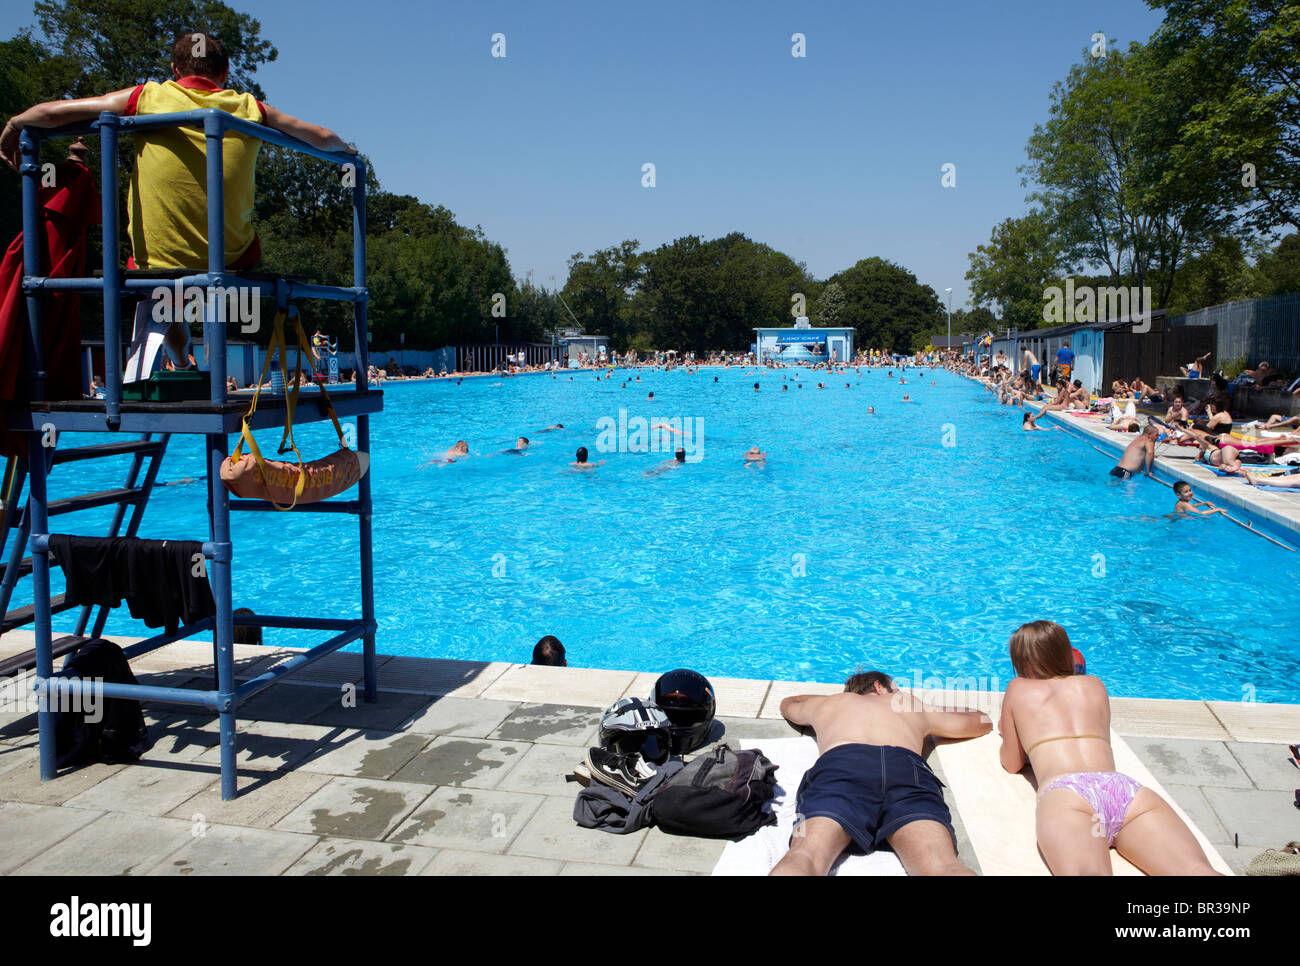 The Tooting Bec Lido London Uk Europe Stock Photo Royalty Free Image 31420978 Alamy